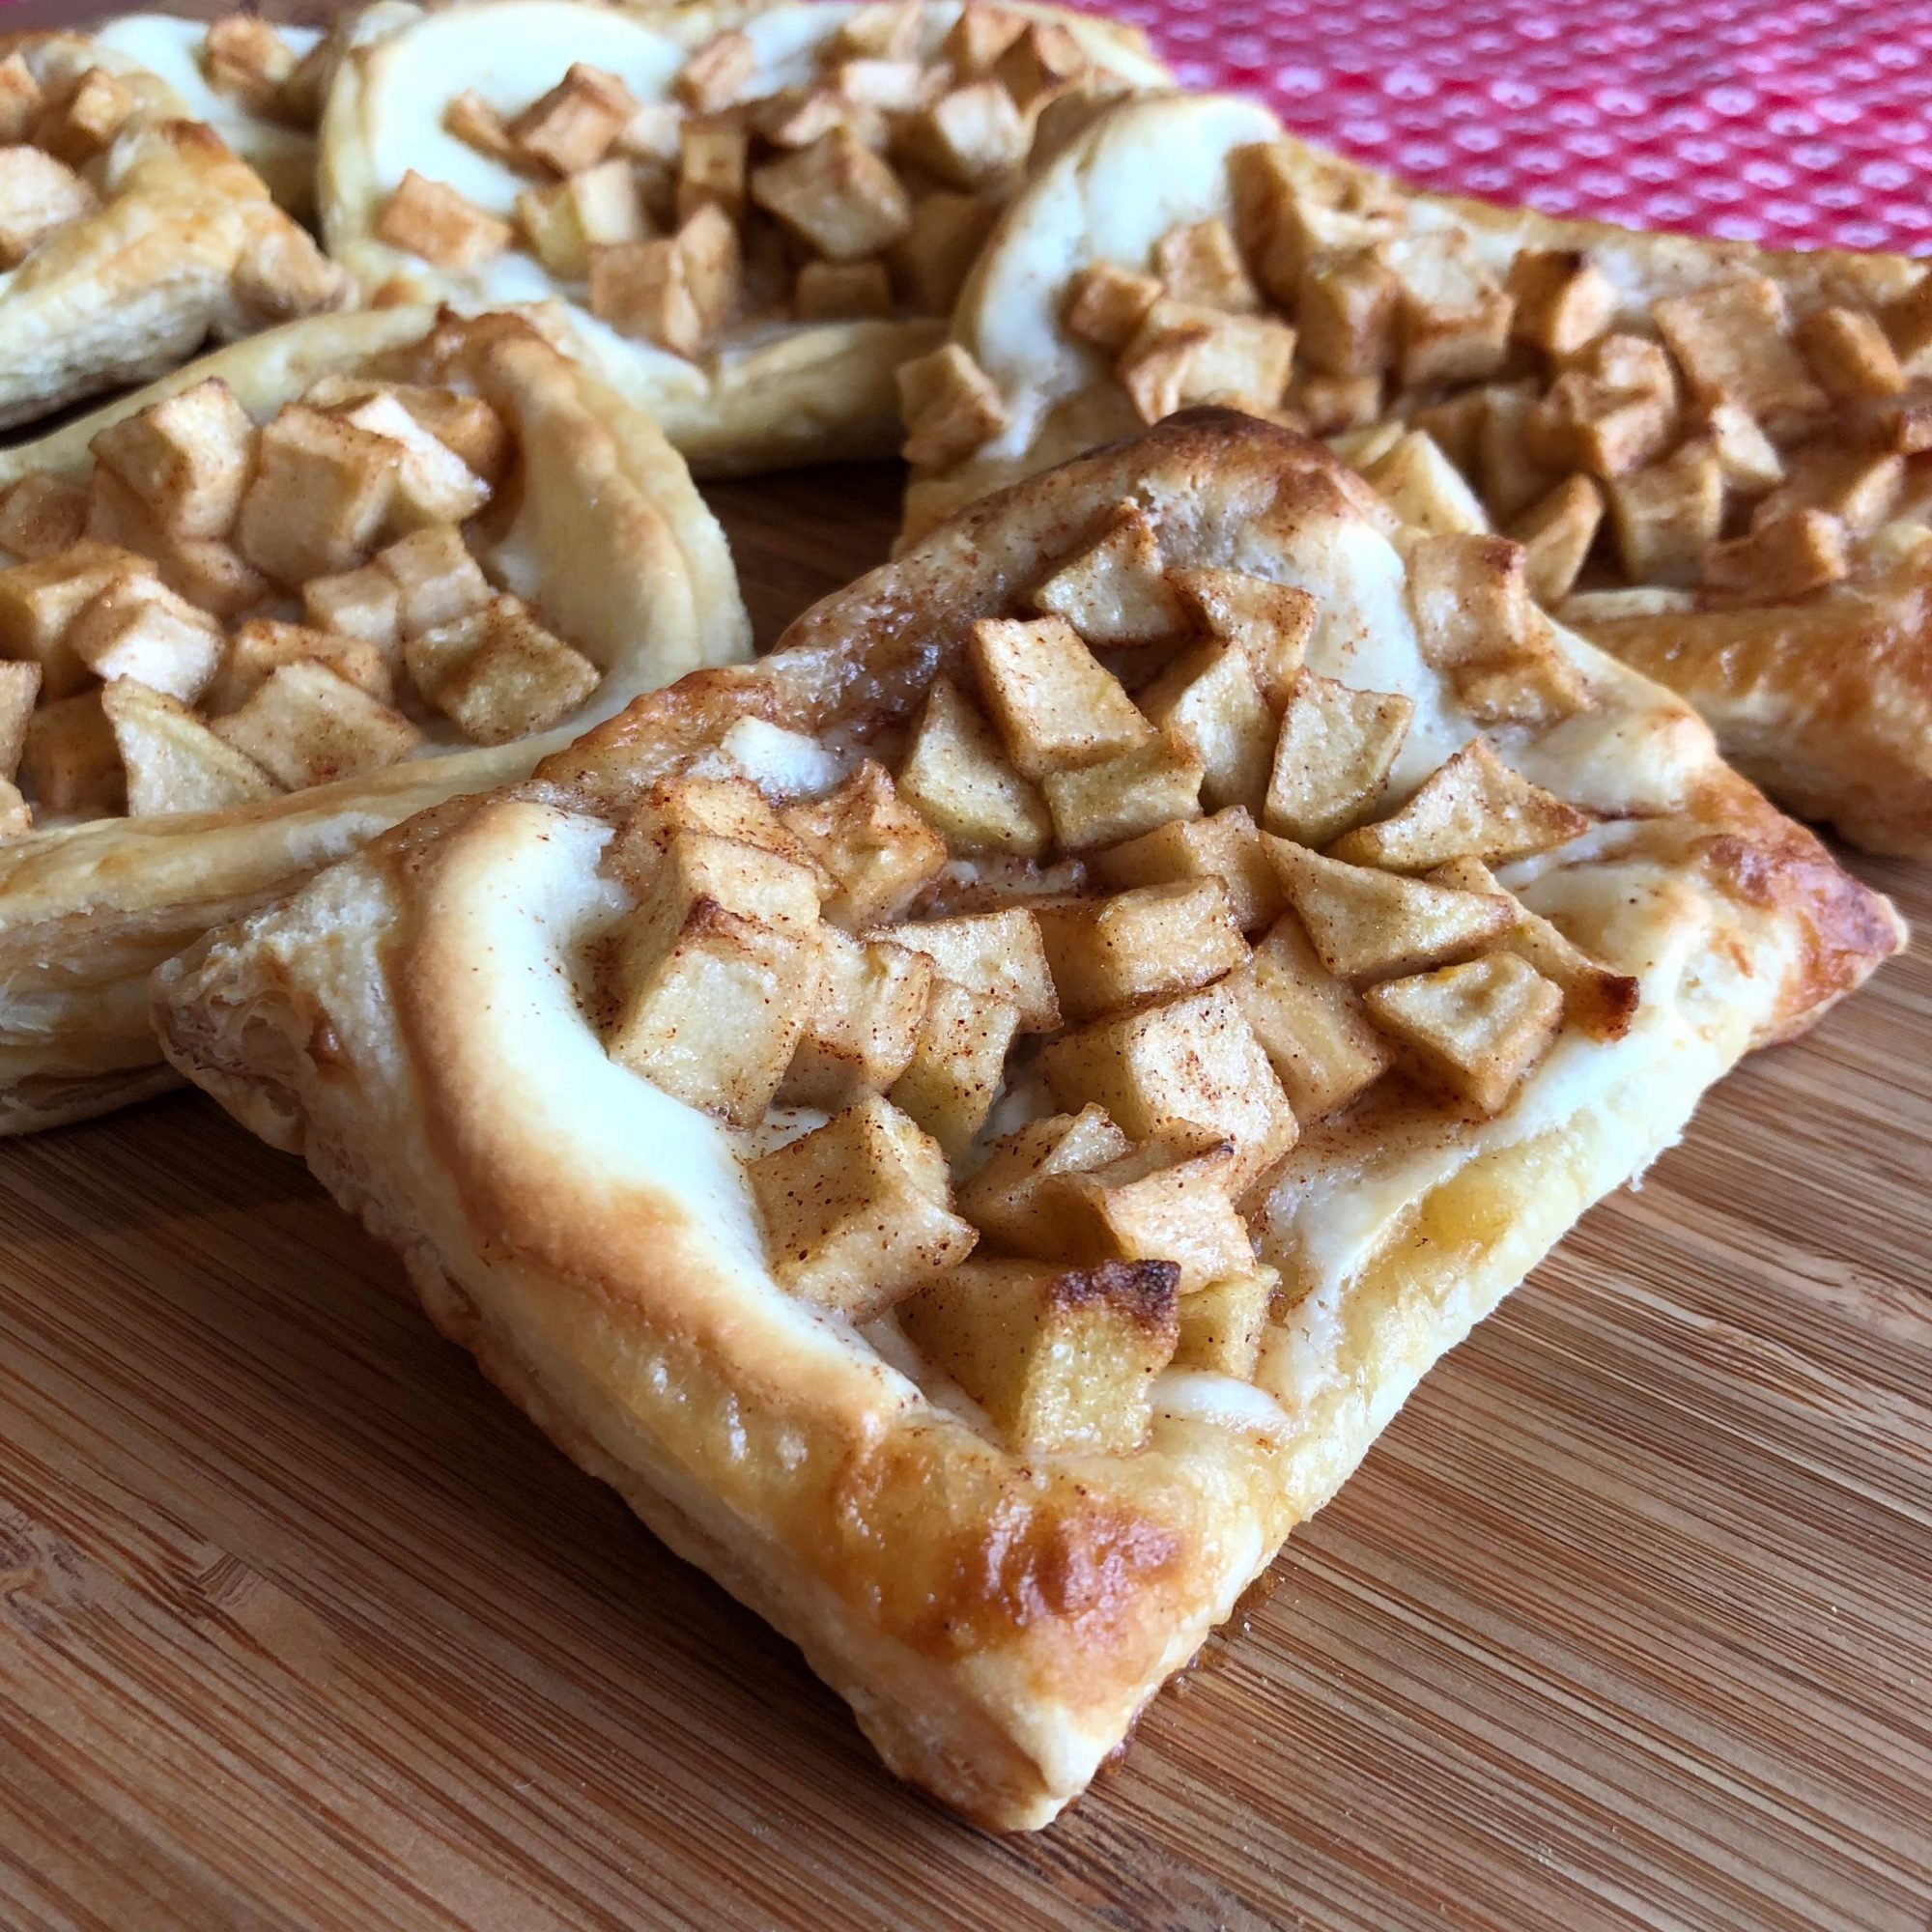 Apple Puff Pastry Tarts on a wooden surface